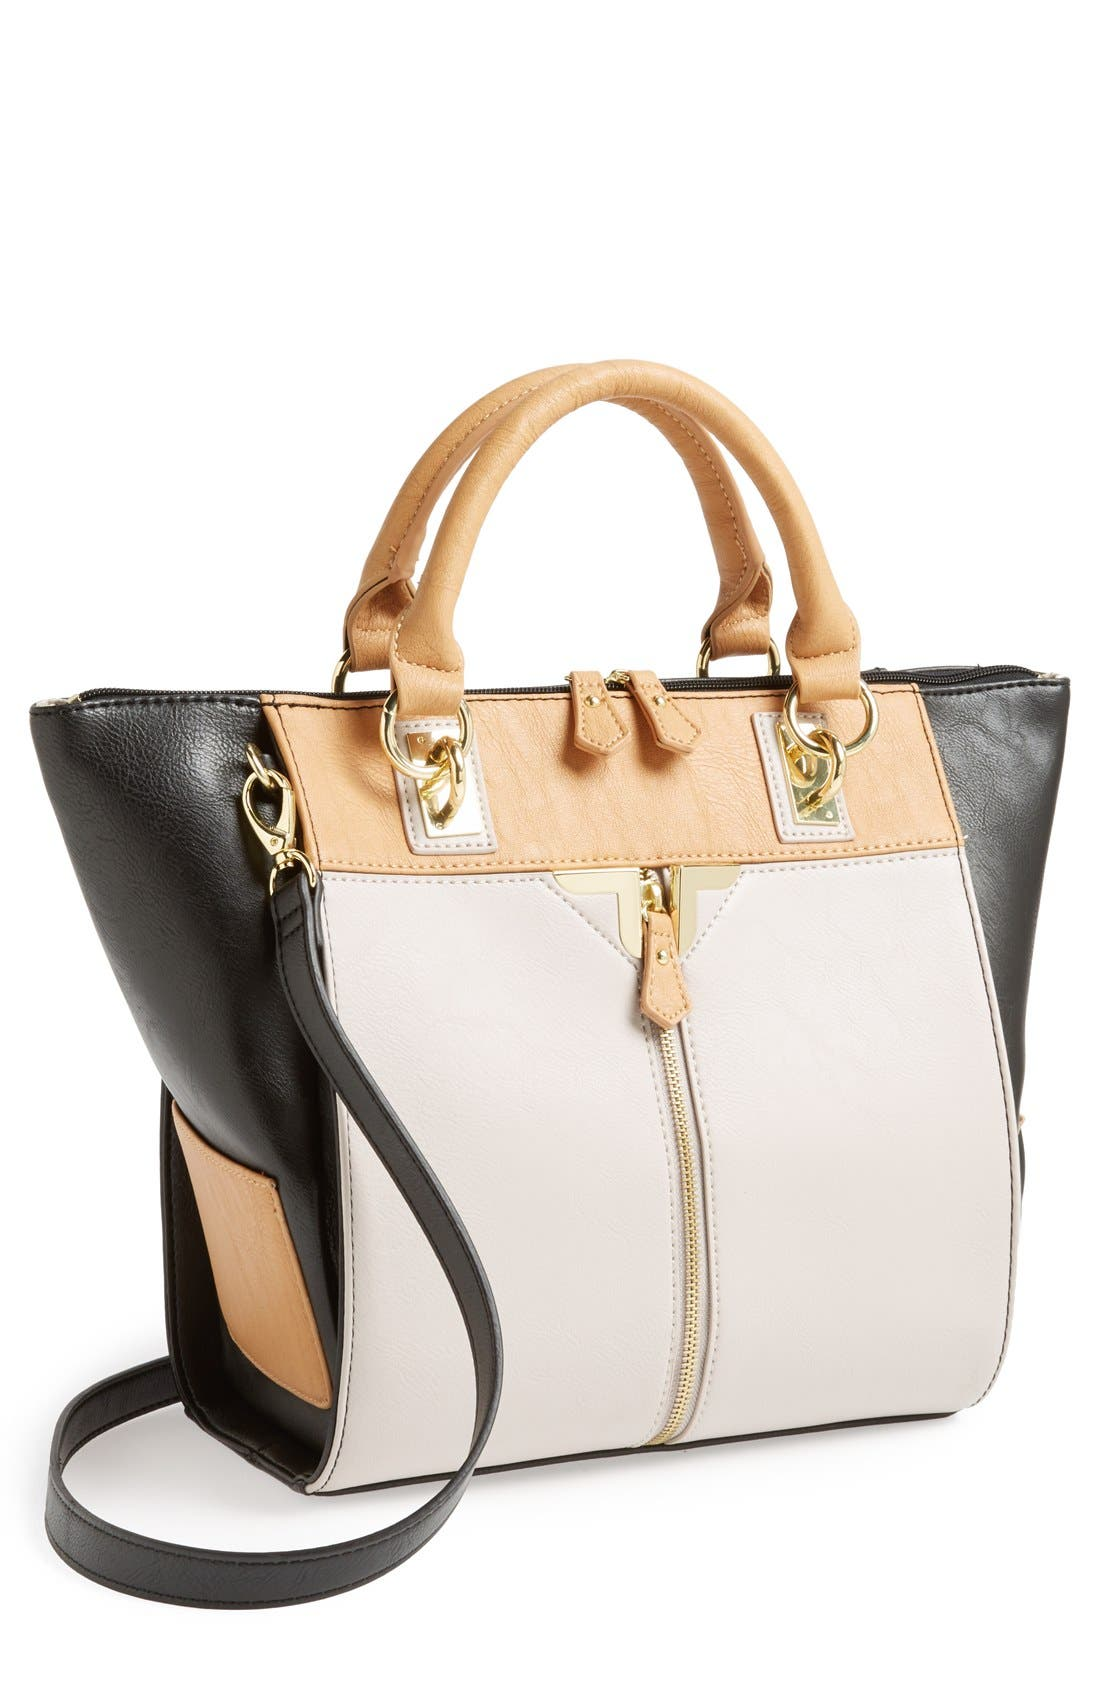 Alternate Image 1 Selected - Danielle Nicole 'Alexa' Faux Leather Satchel